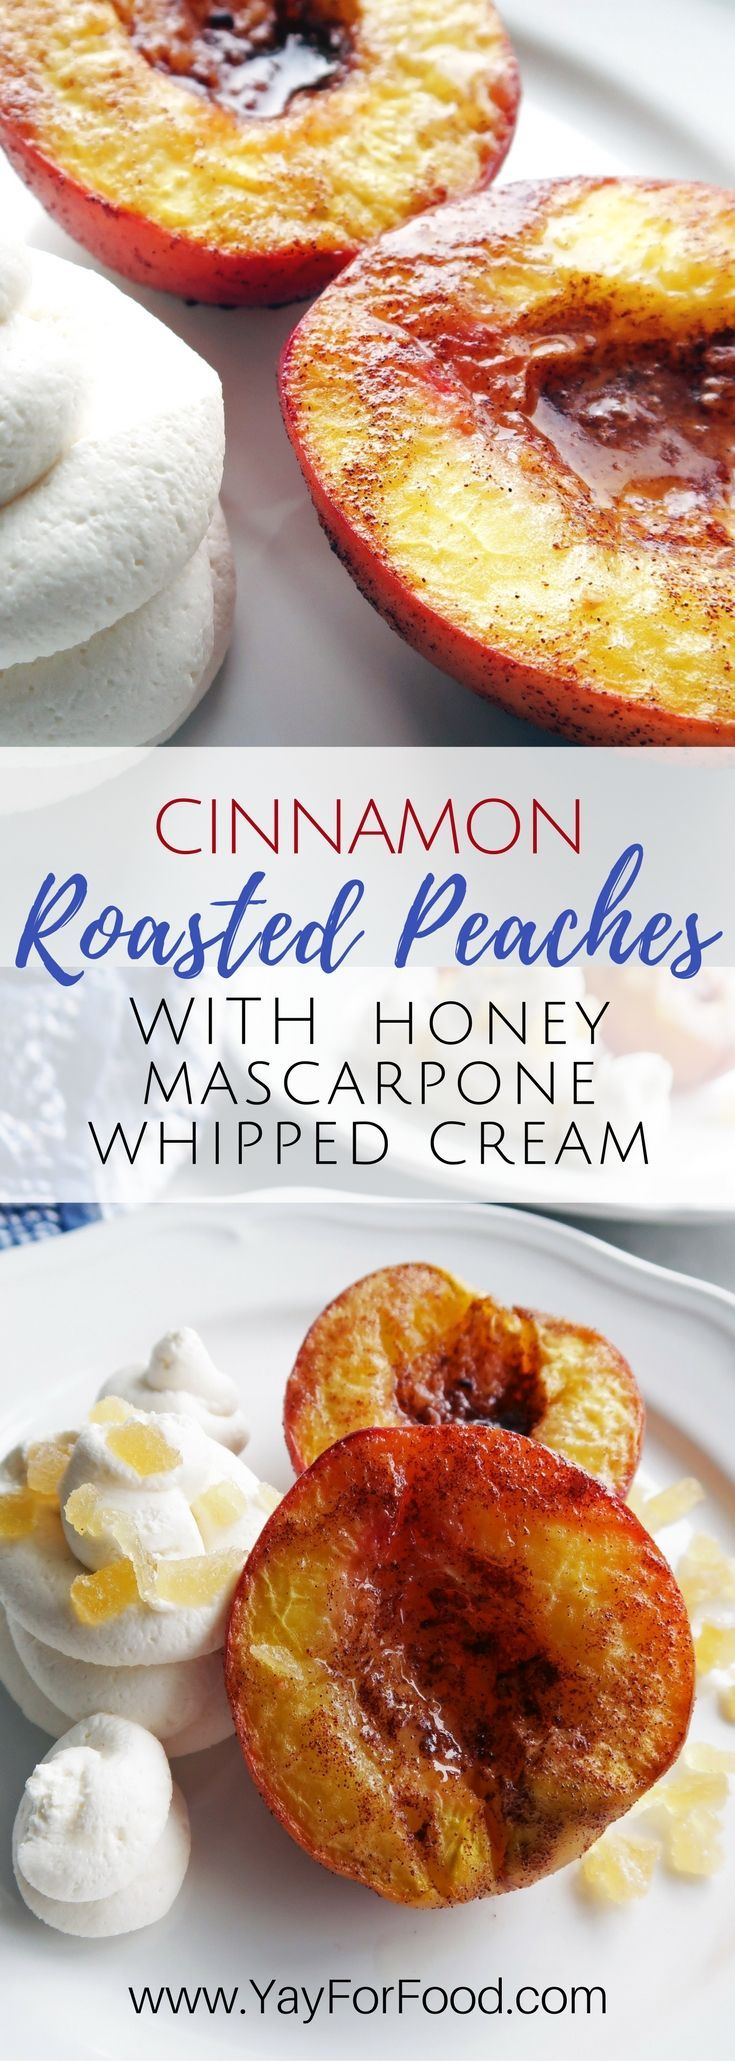 Cinnamon Roasted Peaches with Honey Mascarpone Whipped Cream #easydesserts